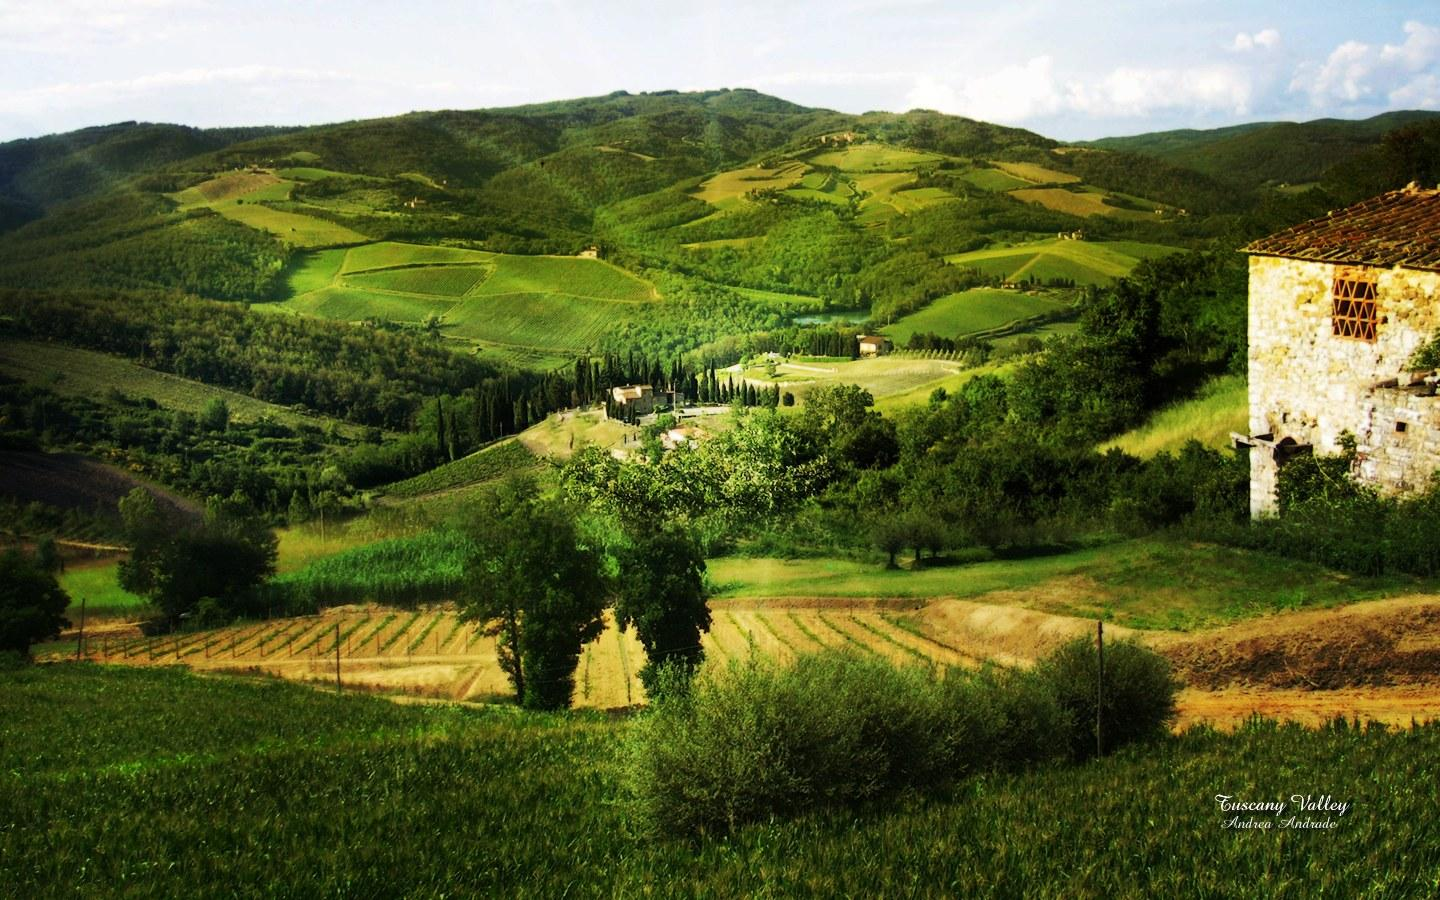 1440x900px Tuscan Countryside Wallpaper Desktop - WallpaperSafari